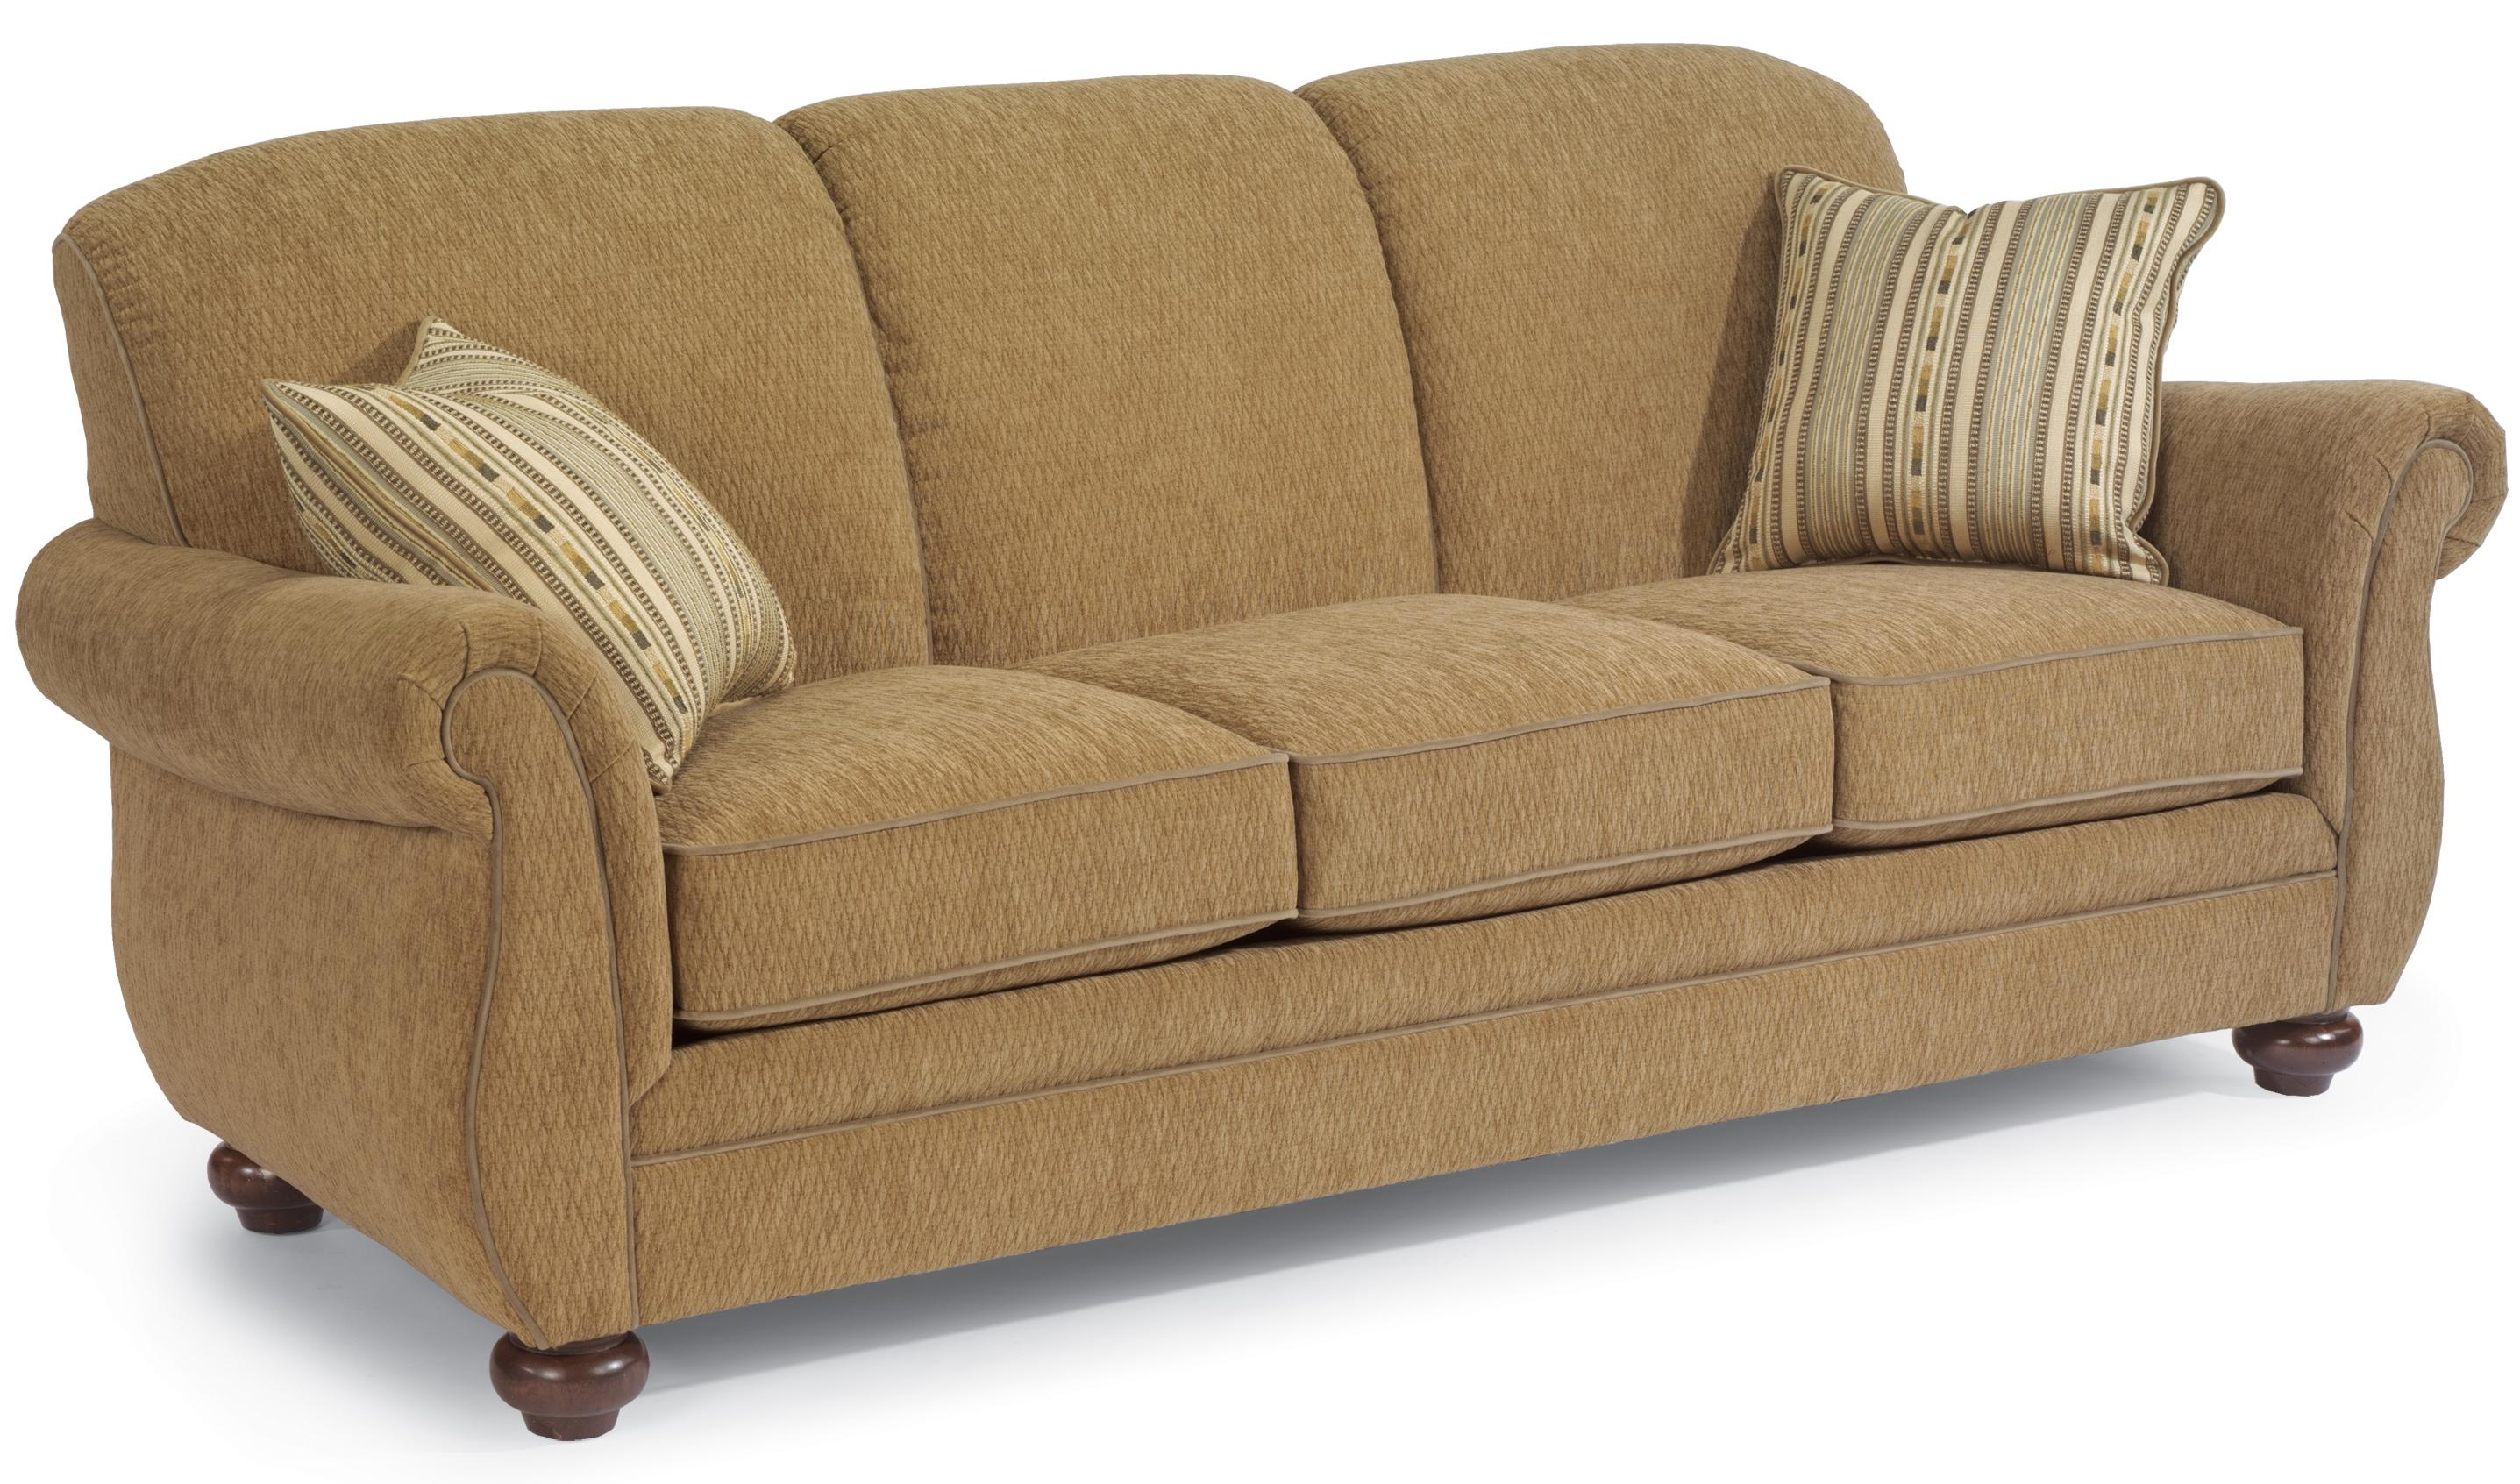 Flexsteel Winston Three Seat Stationary Sofa AHFA Sofa Dealer